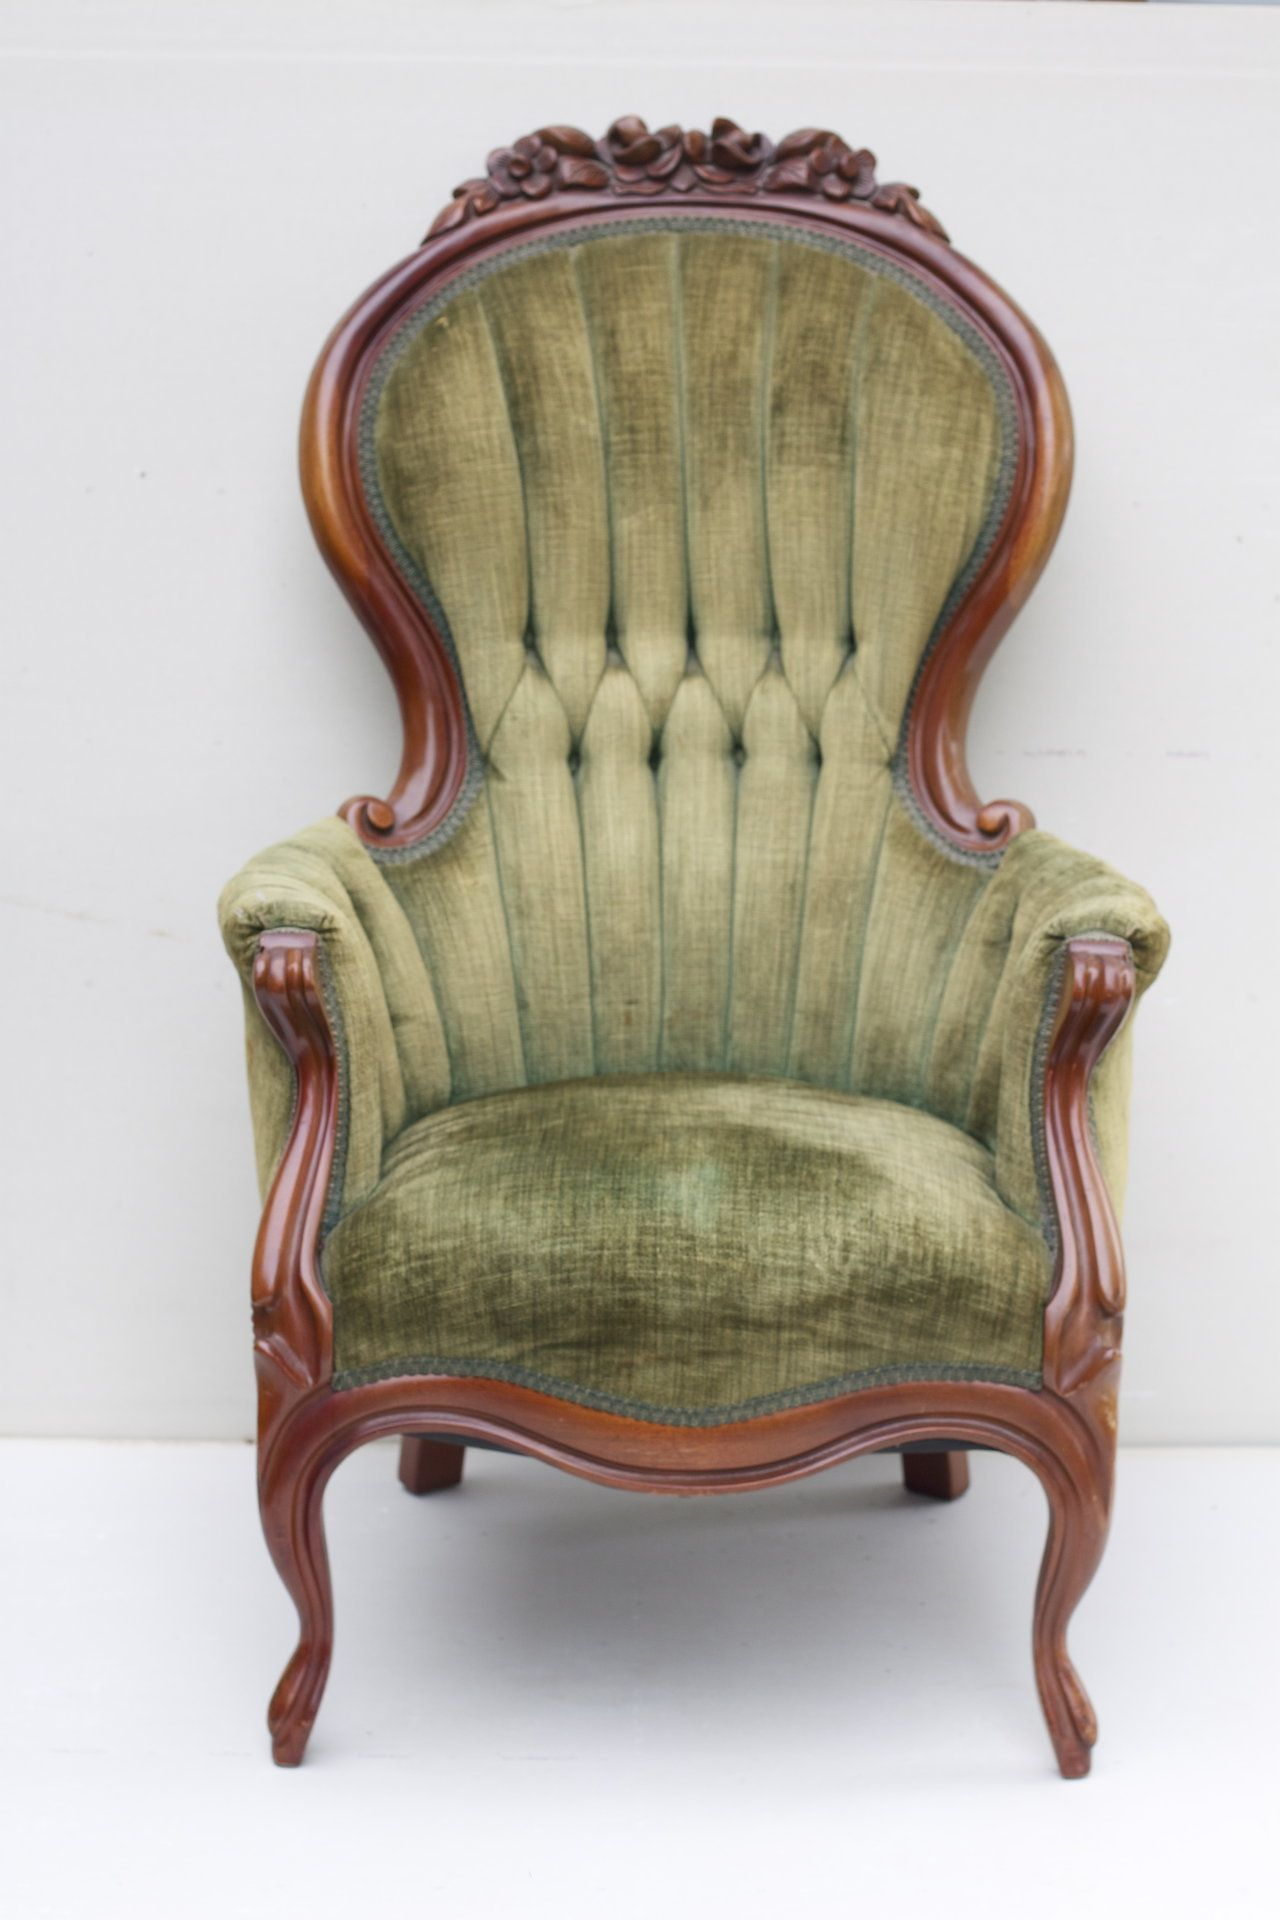 Antique Armchairs Design Storiestrending Com In 2020 Vintage